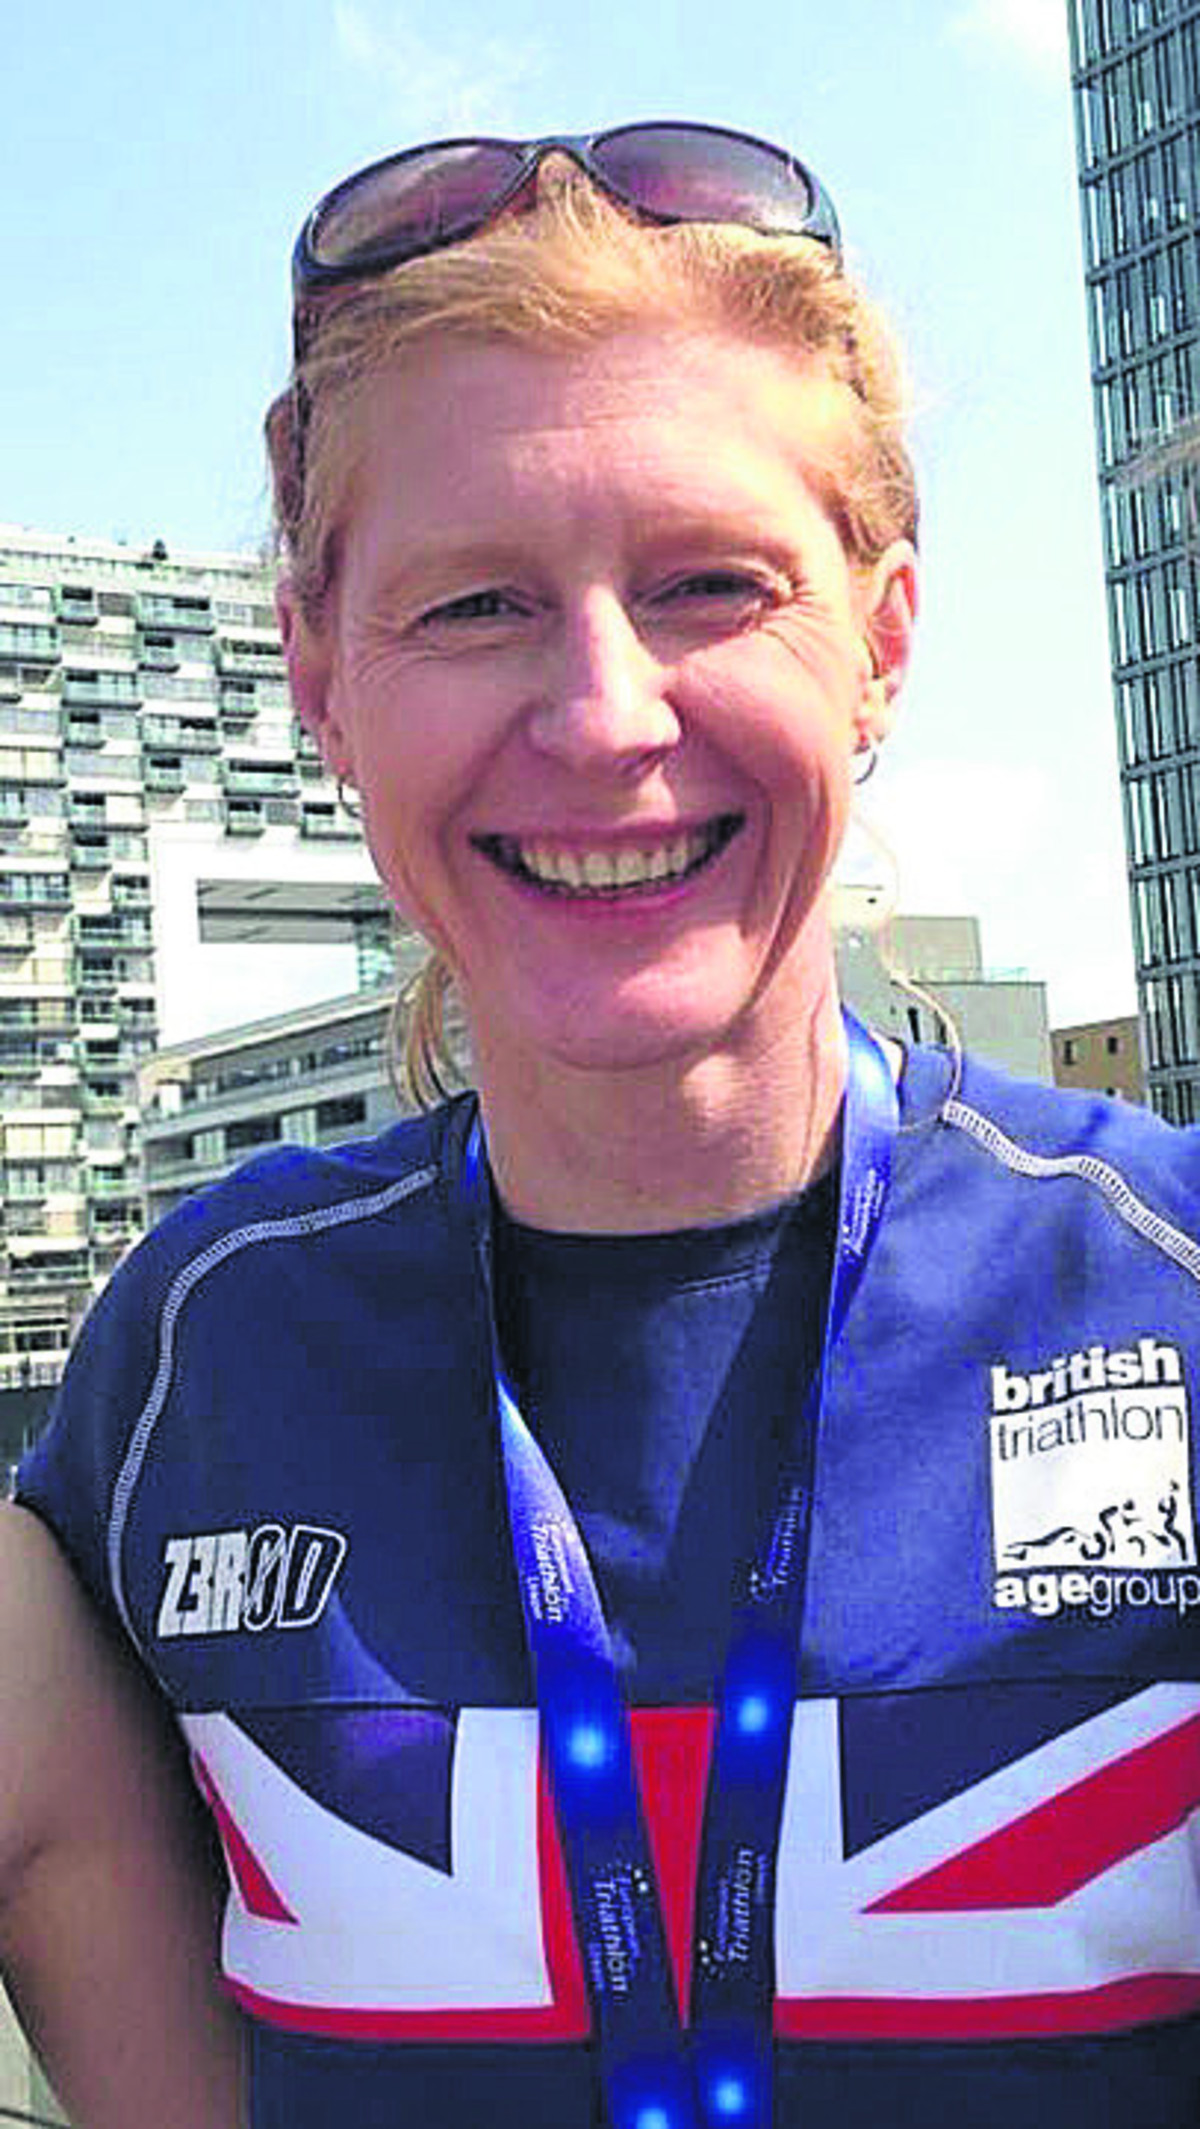 Janette Cardy was crowned European Aquathon champion following her success in Cologne